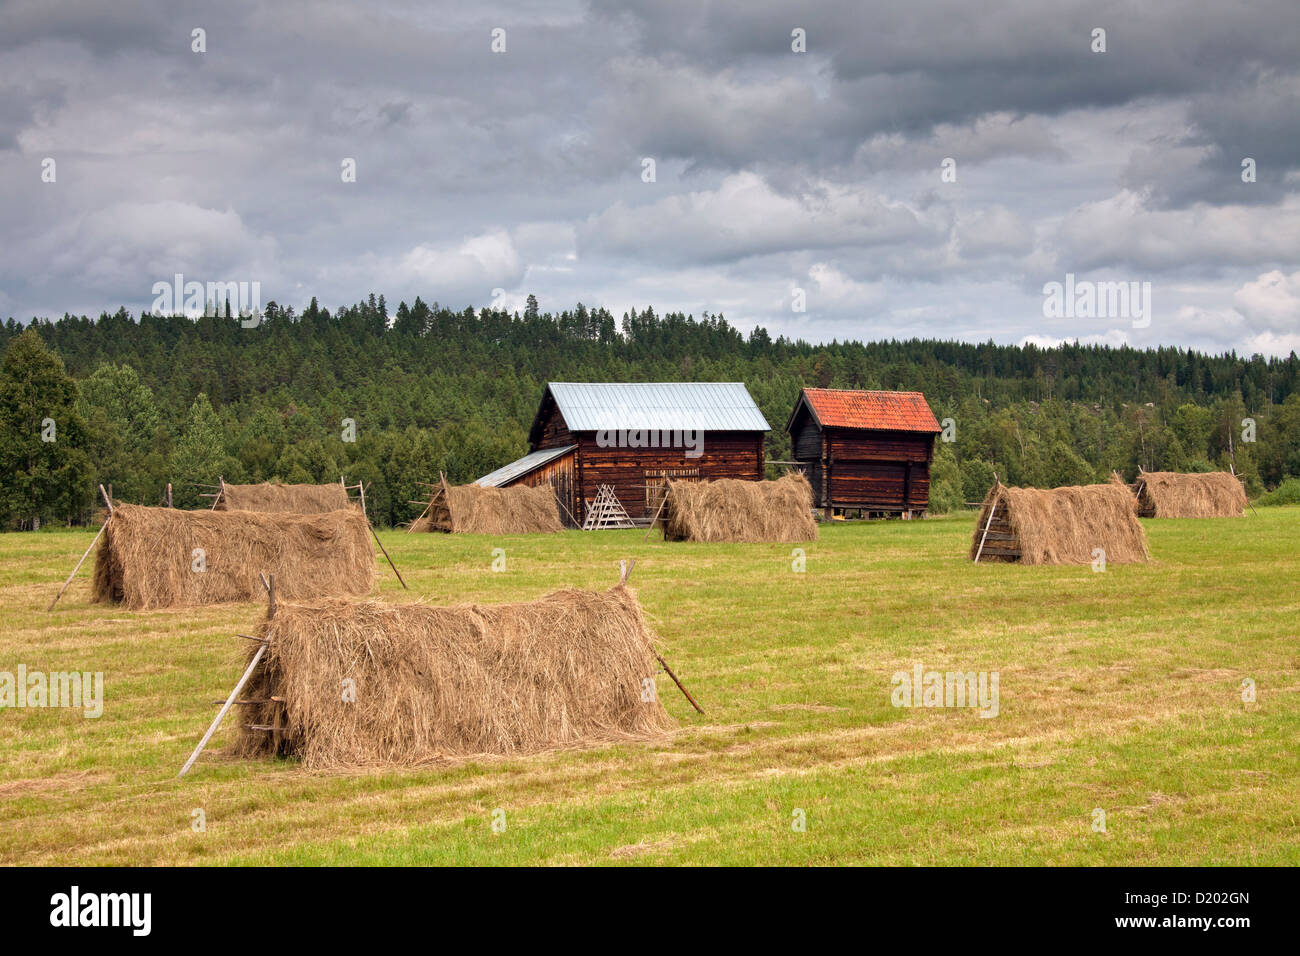 Hayricks with cut grass drying on hayfield and wooden barns at Jämtland, Sweden, Scandinavia - Stock Image